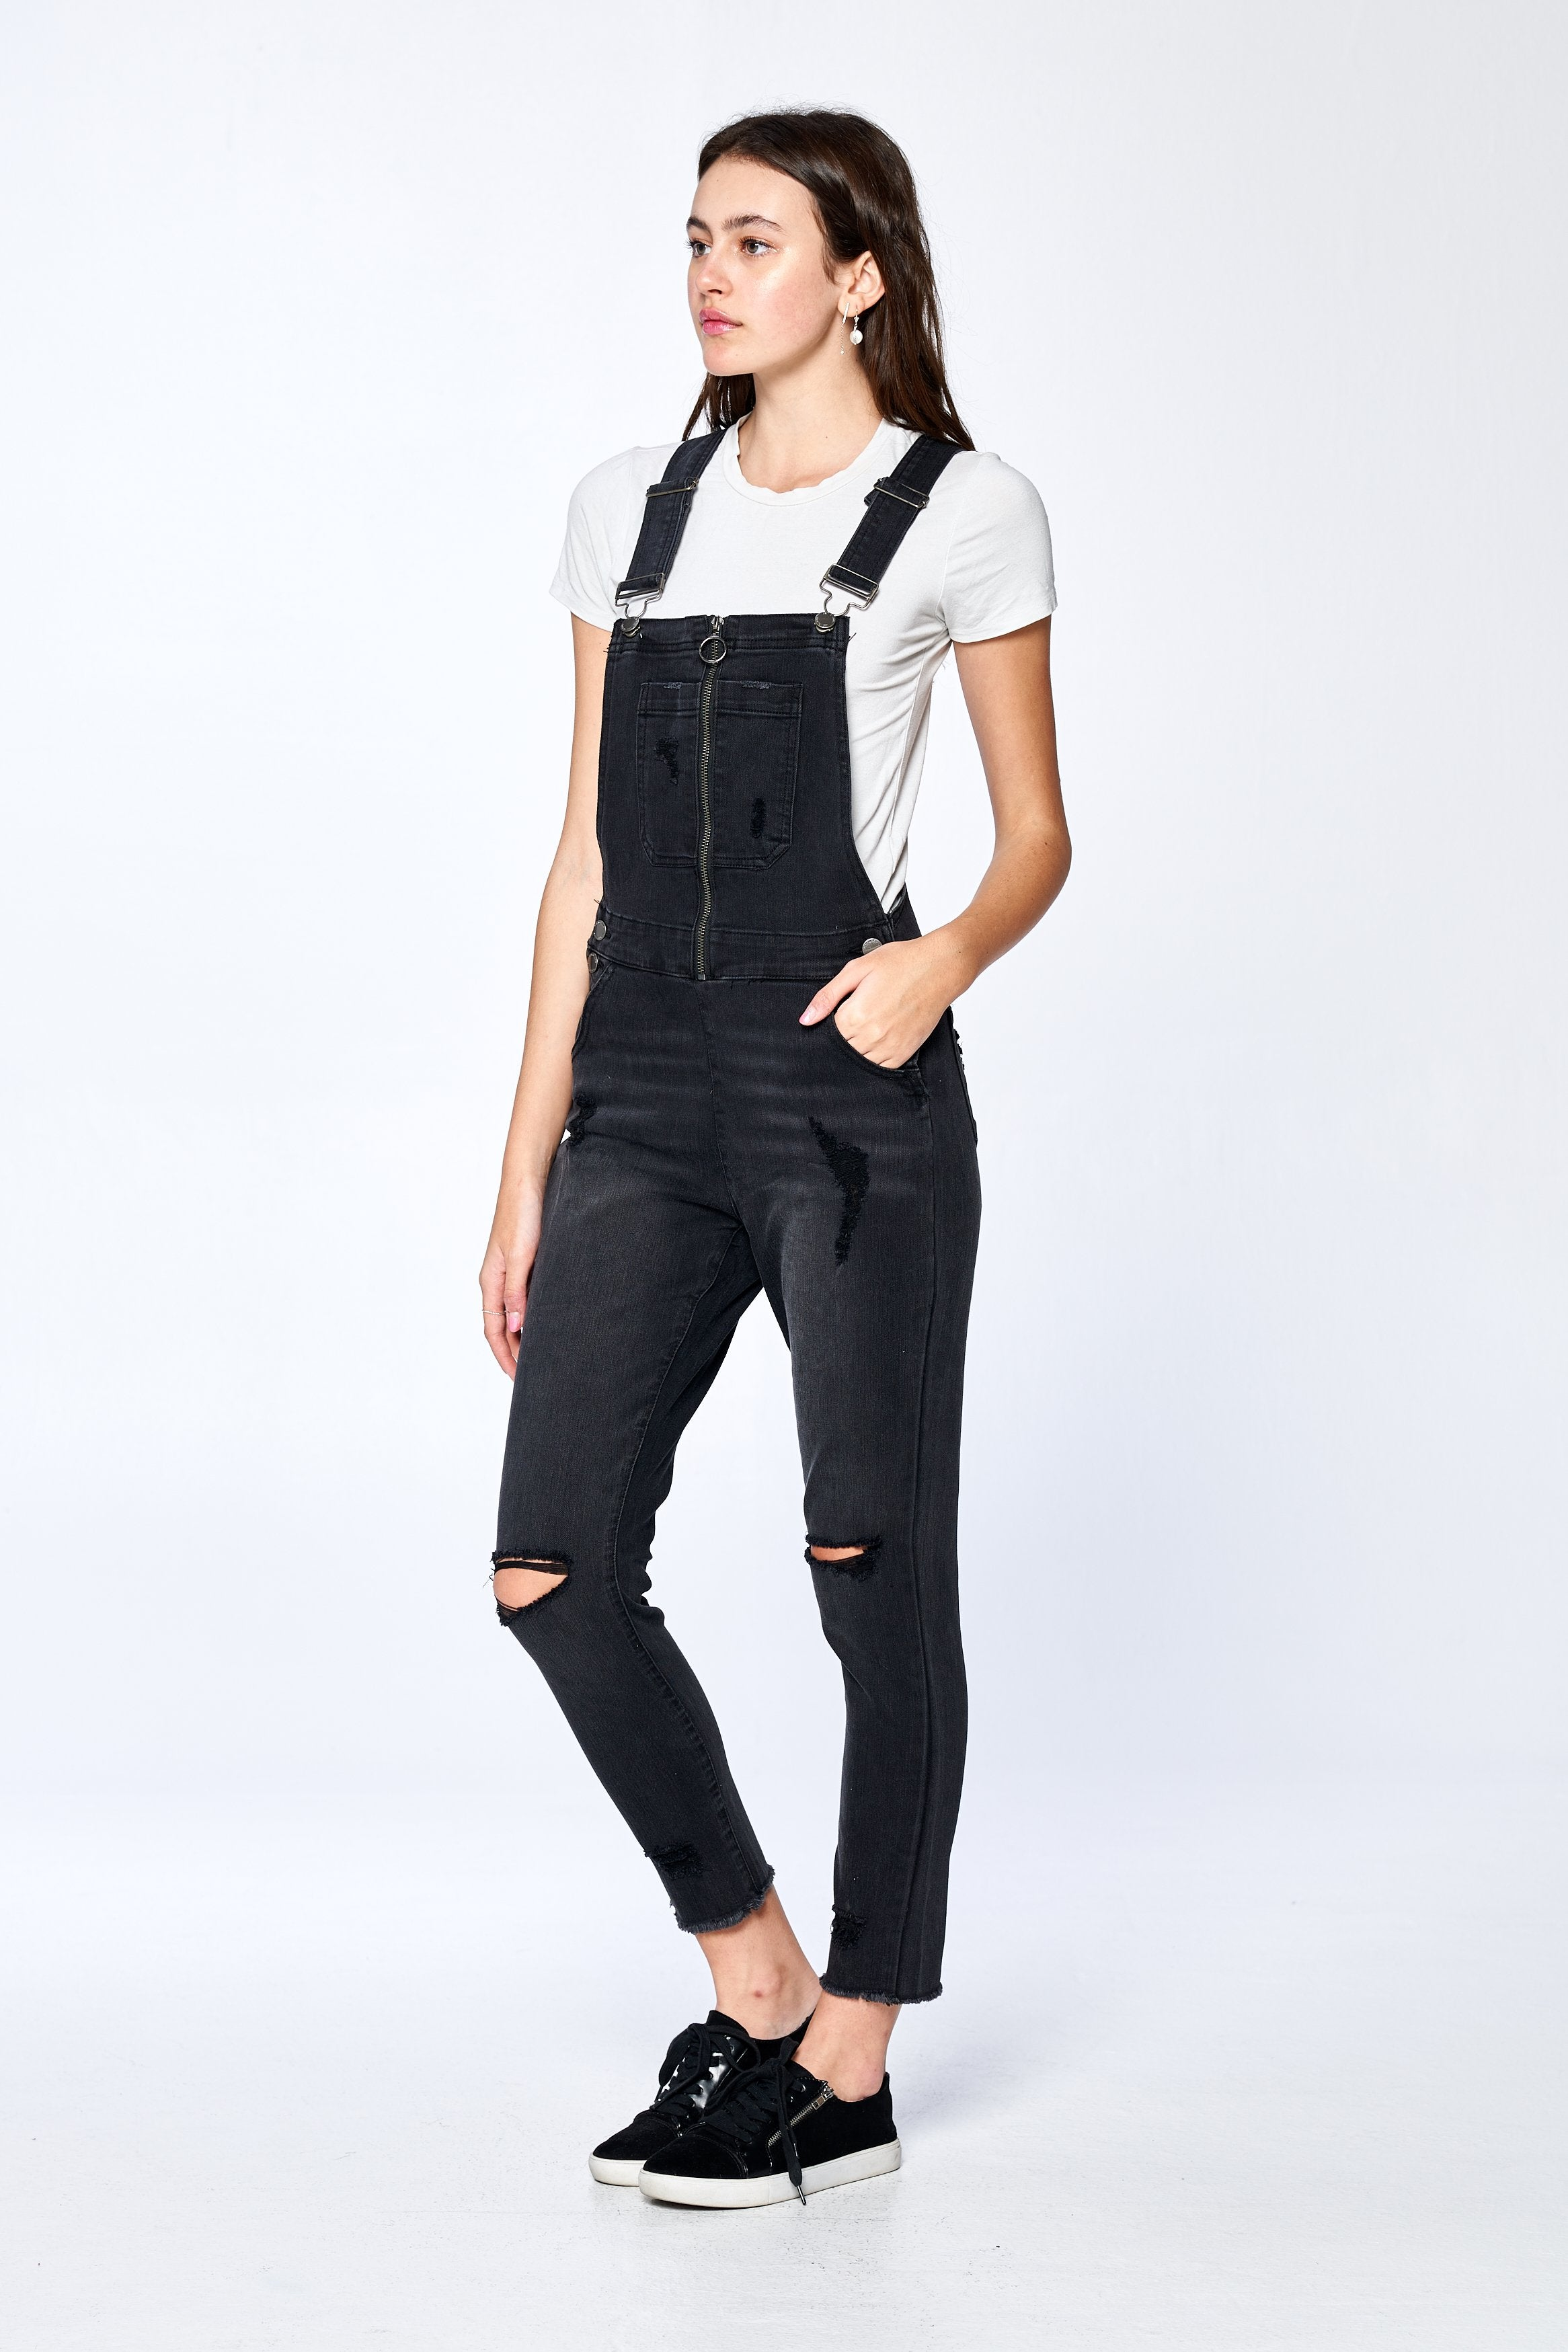 Khanomak Women's Distress Fray Hem Zip Front Overalls